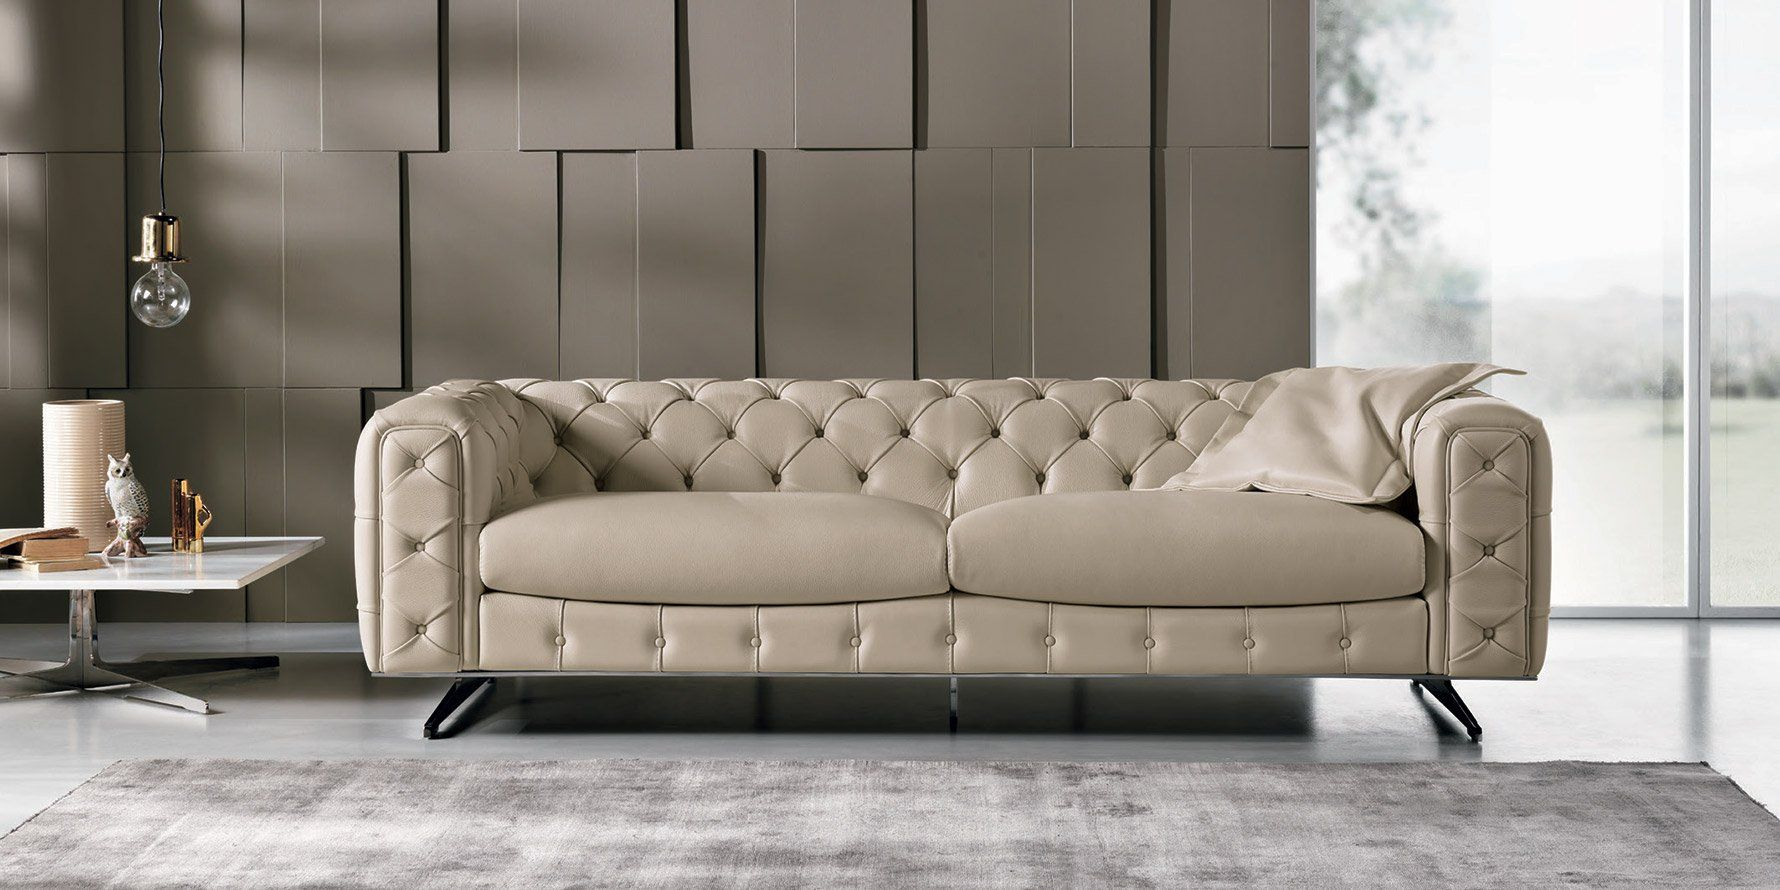 Italian Sofa Auckland The Ingrid Sofa And Loveseat From Max Divani Italy Tufted